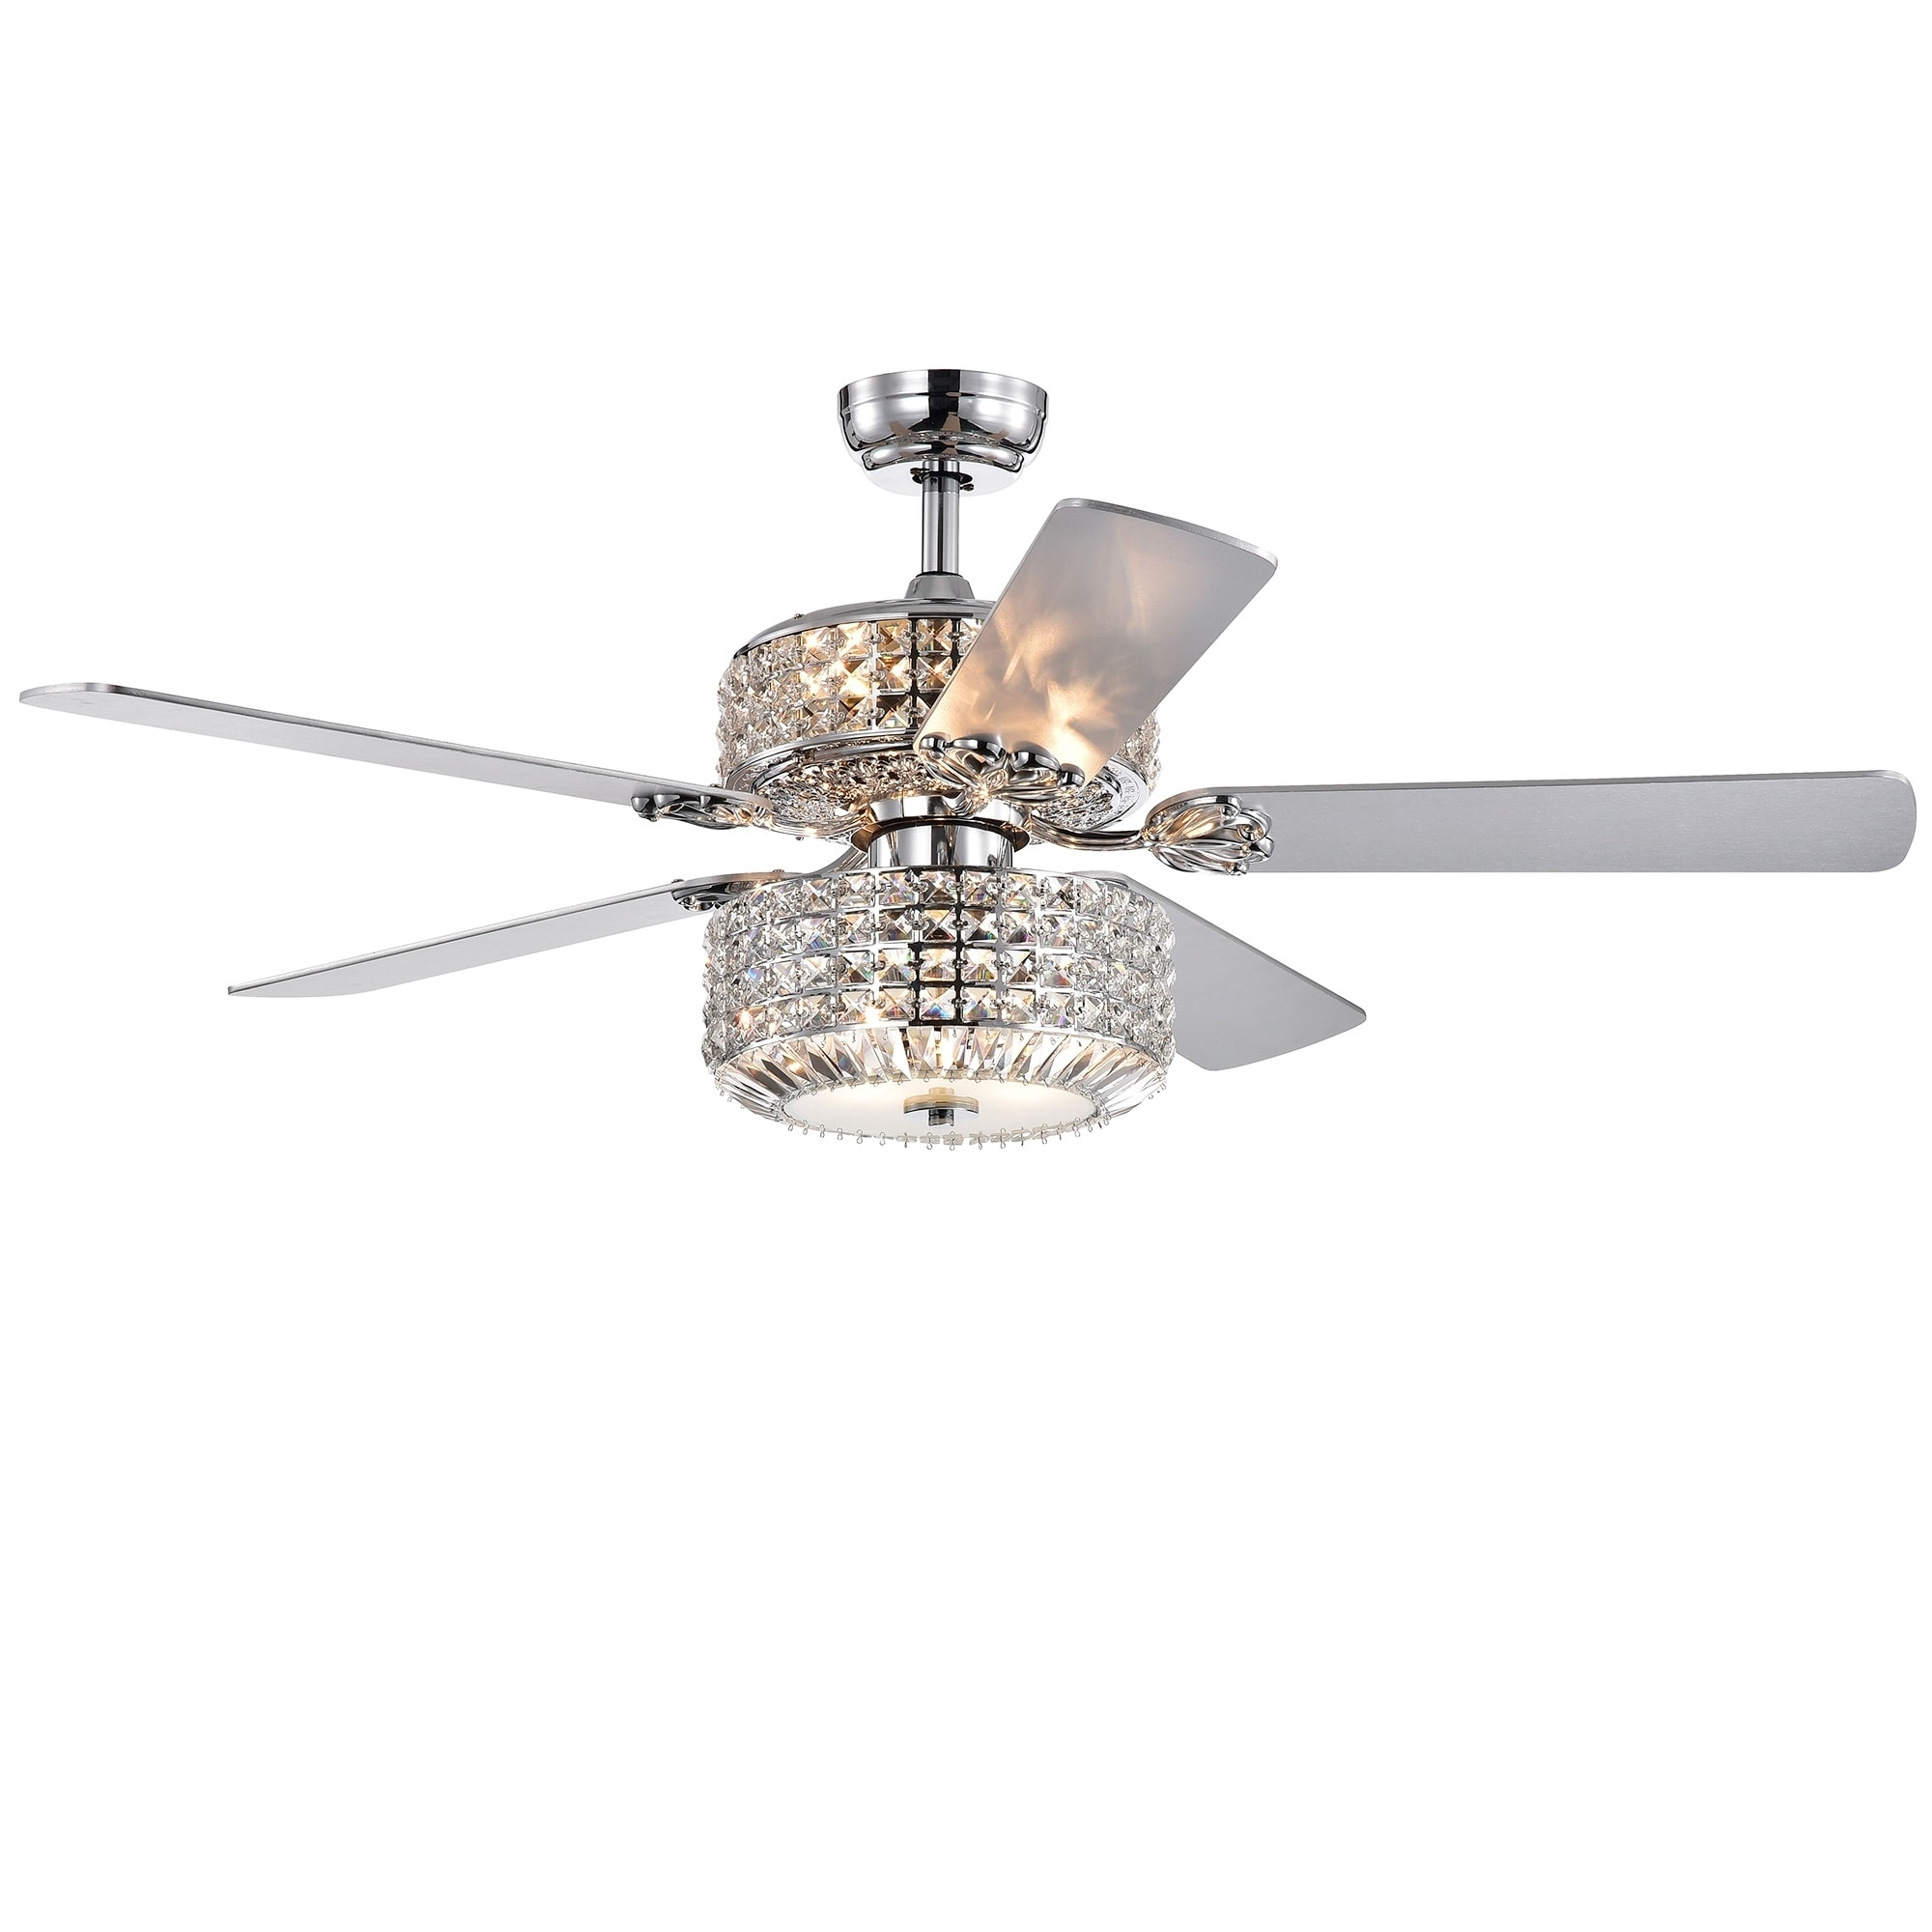 Shop Black Friday Deals On Walter Dual Lamp Chrome 52 Inch Lighted Ceiling Fan W Crystal Shades Optional Remote Incl 2 Color Blade Options Overstock 27034736 Chrome Pull Chain